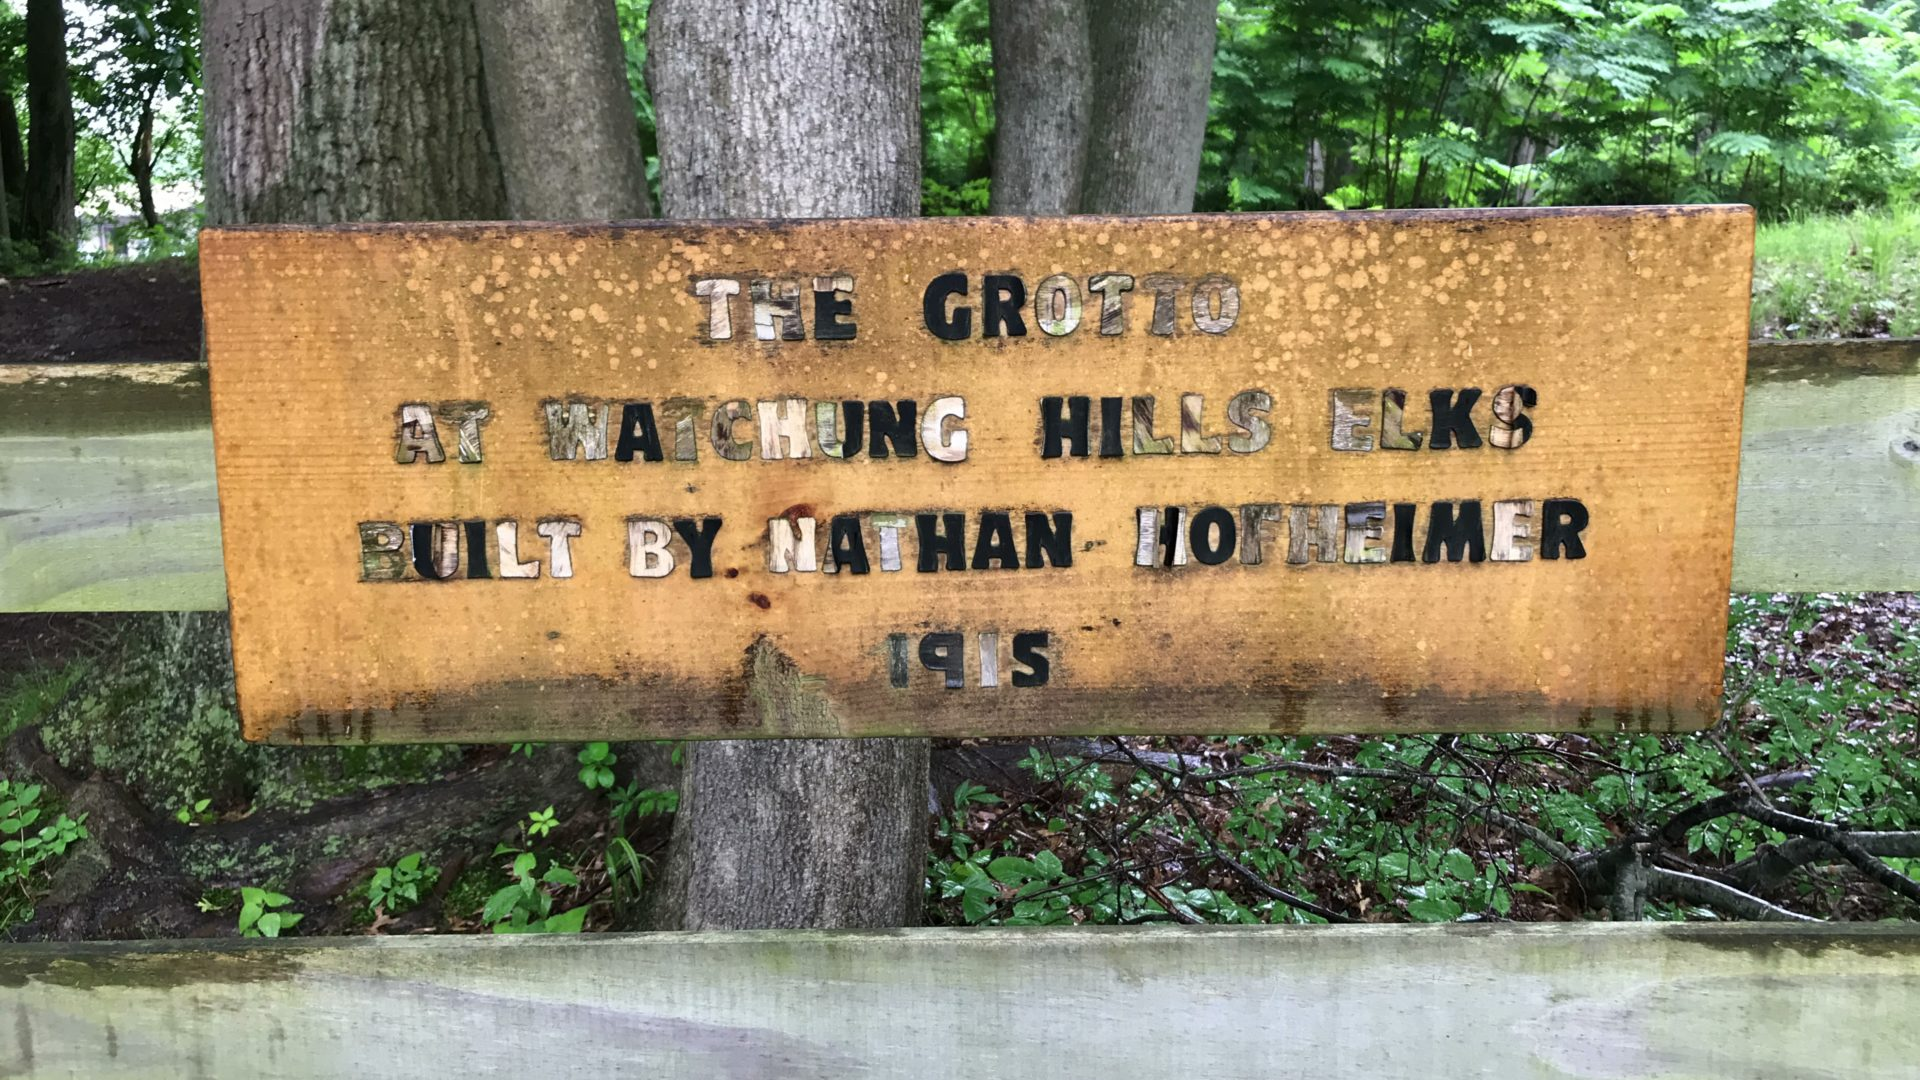 The Elks Grotto Sign in disrepair